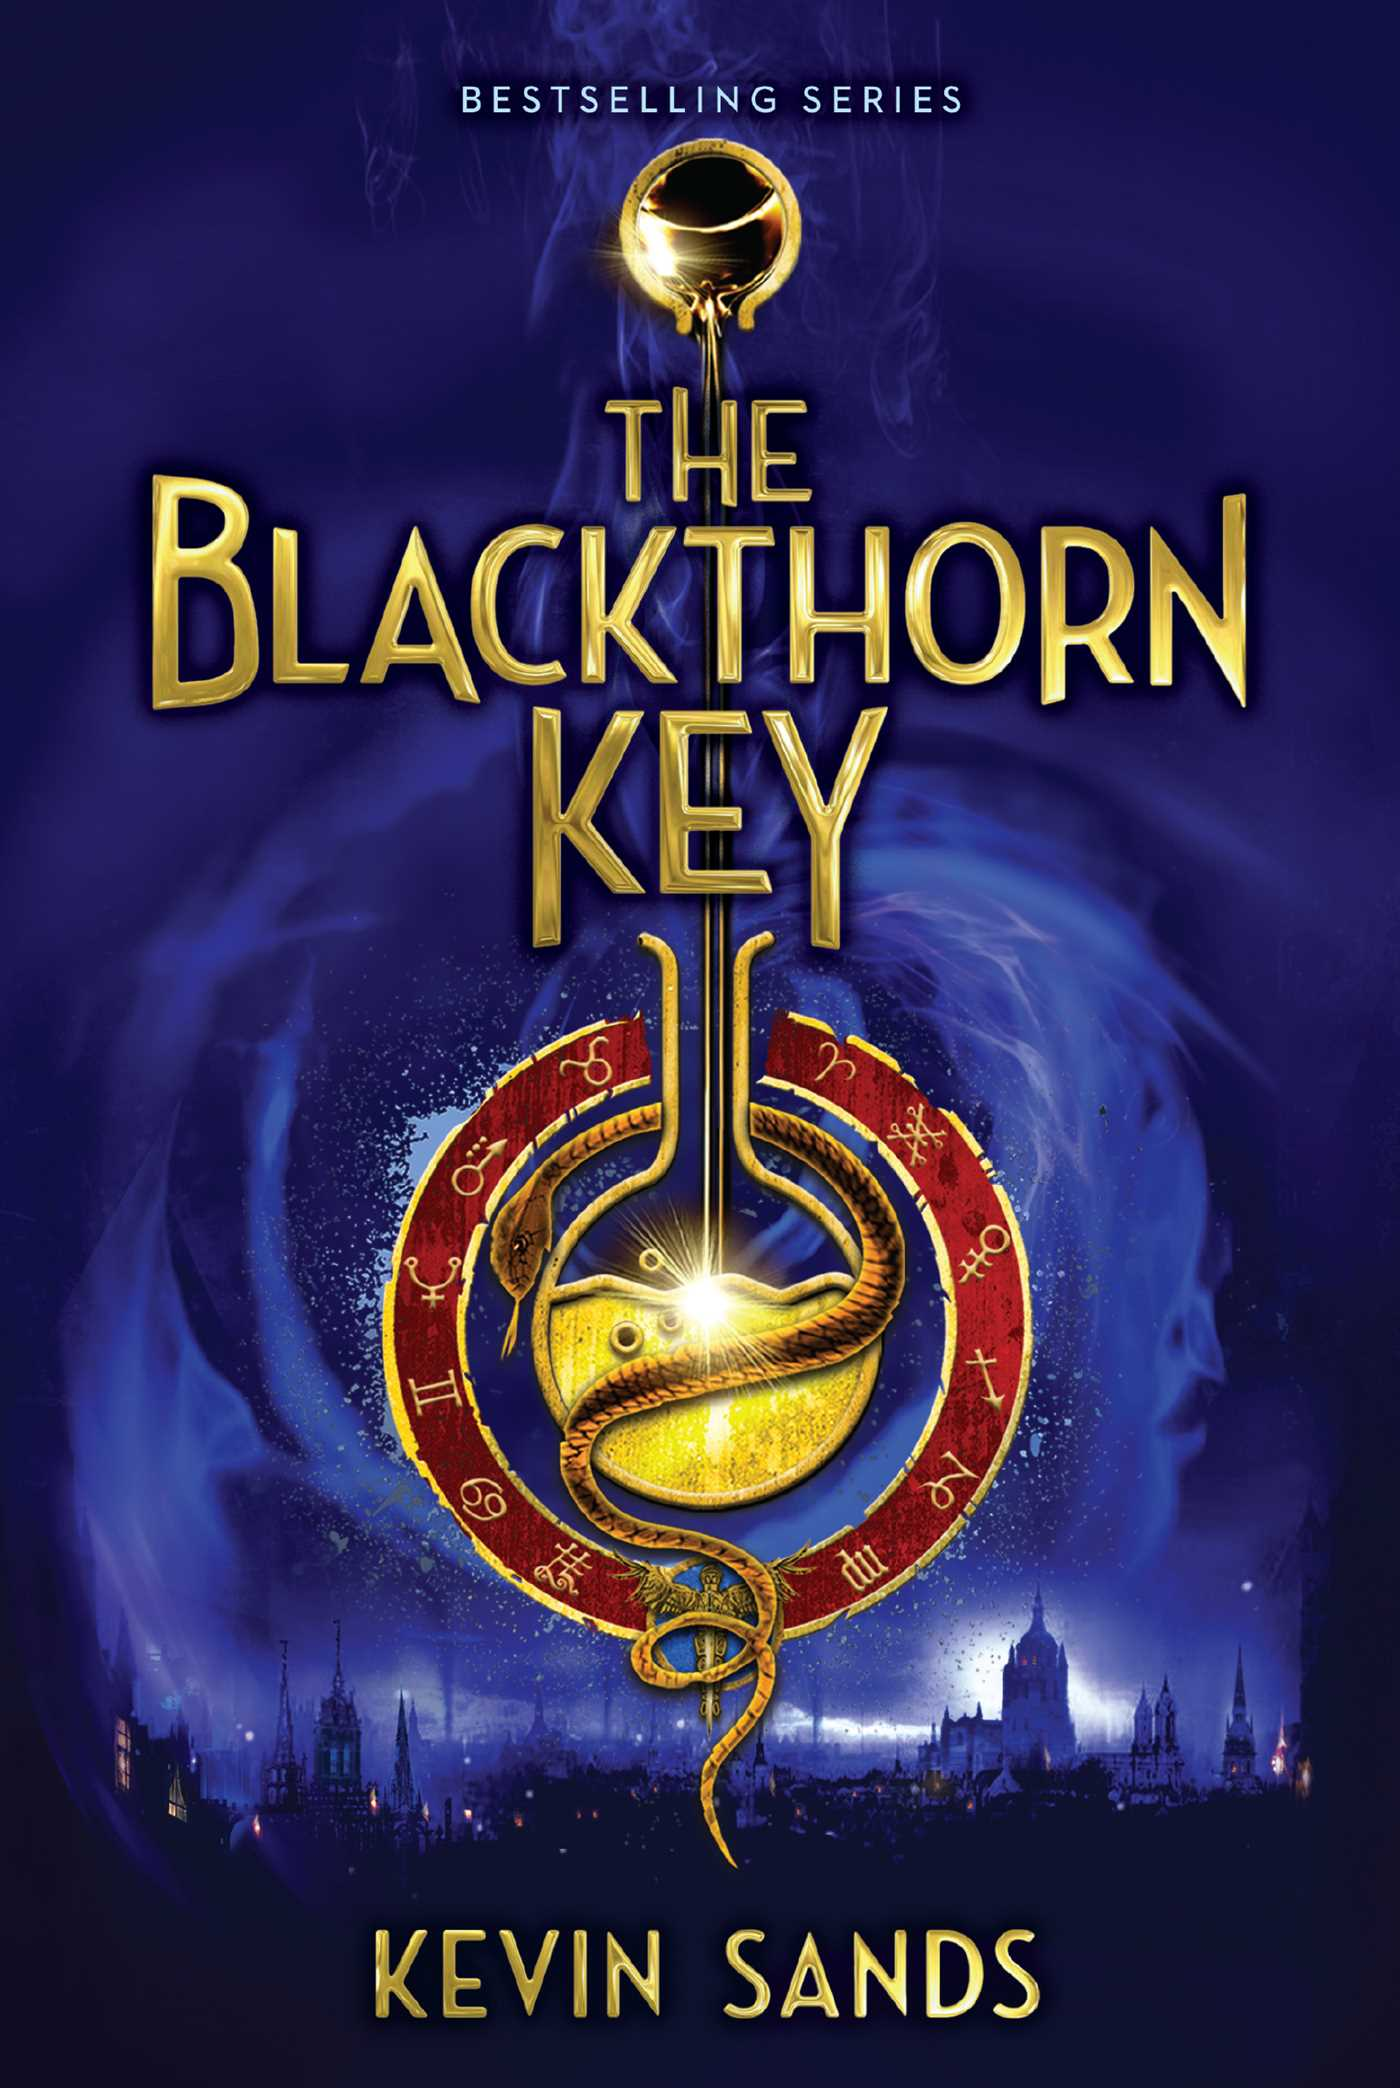 Image result for blackthorn key